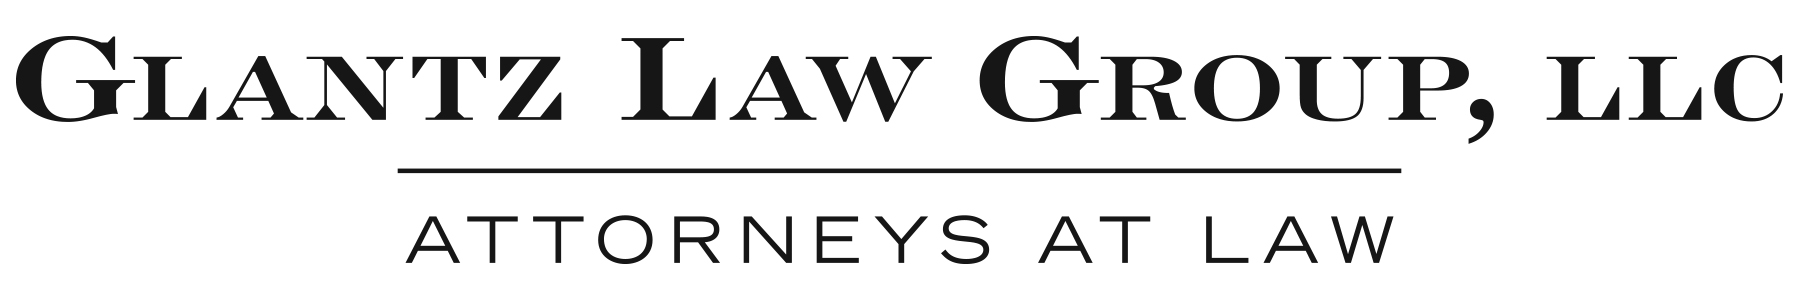 Glantz Law logo.jpg